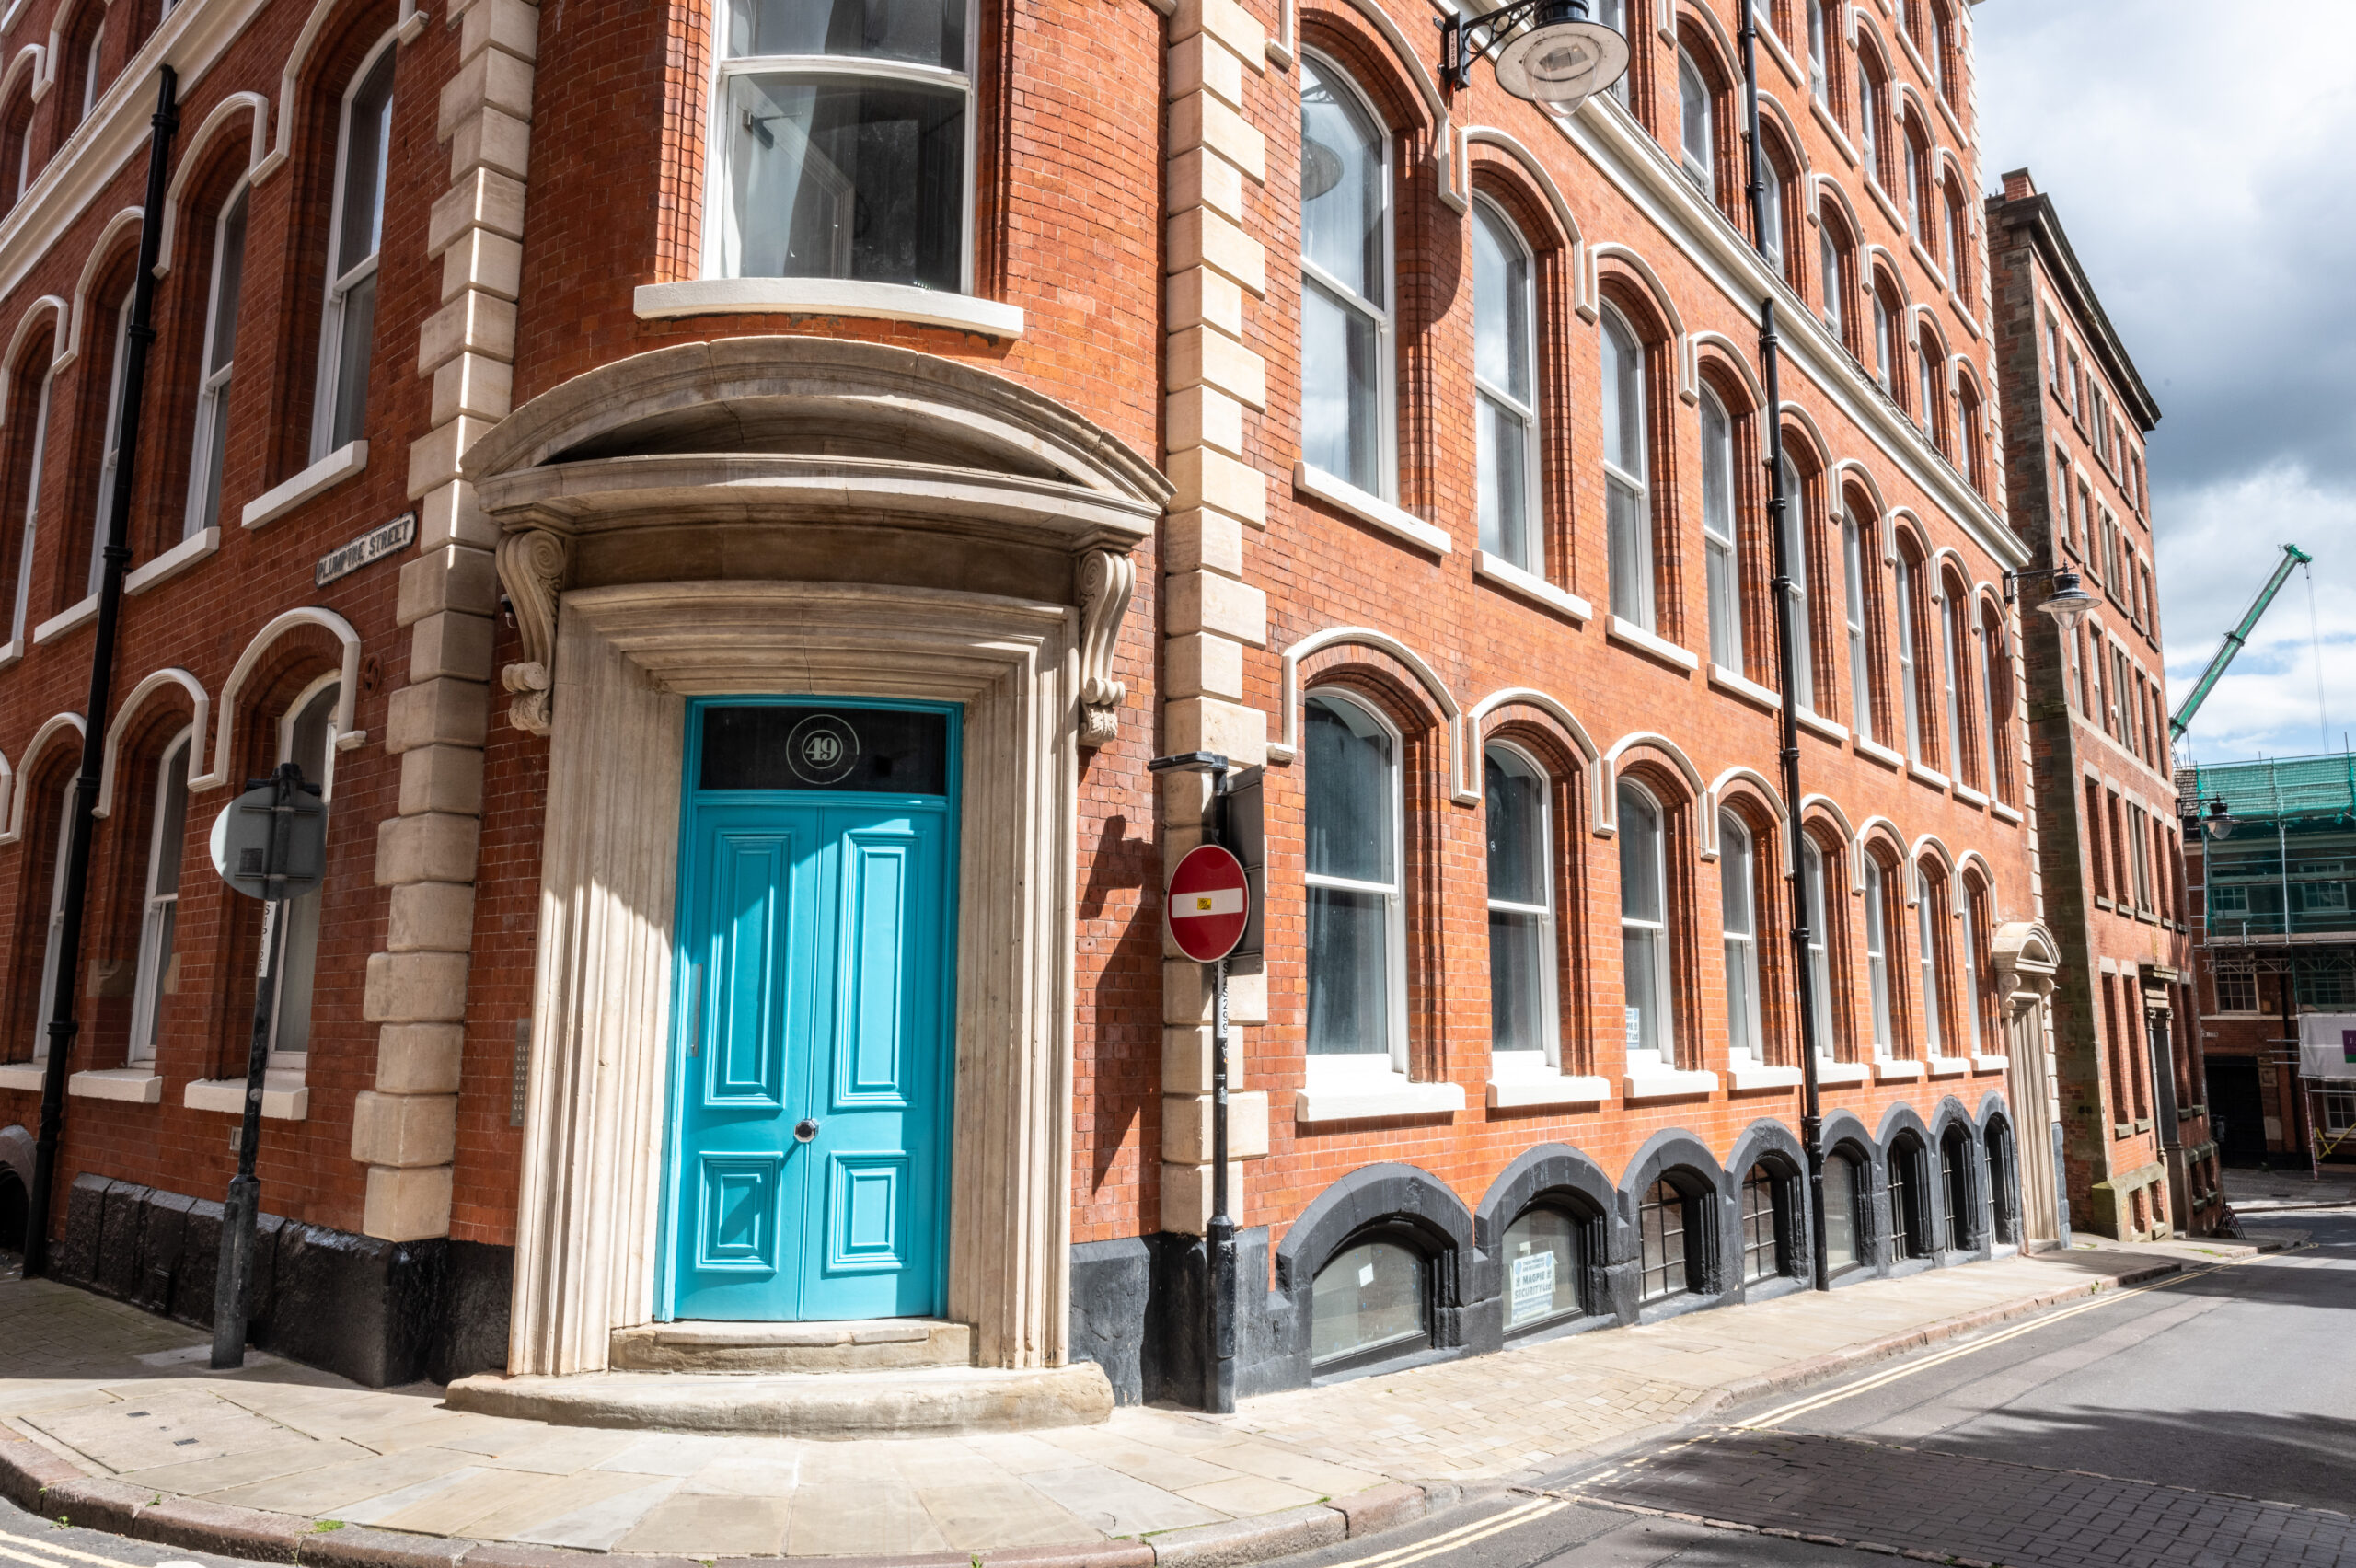 Landmark buildings in heart of Lace Market converted to luxury apartments